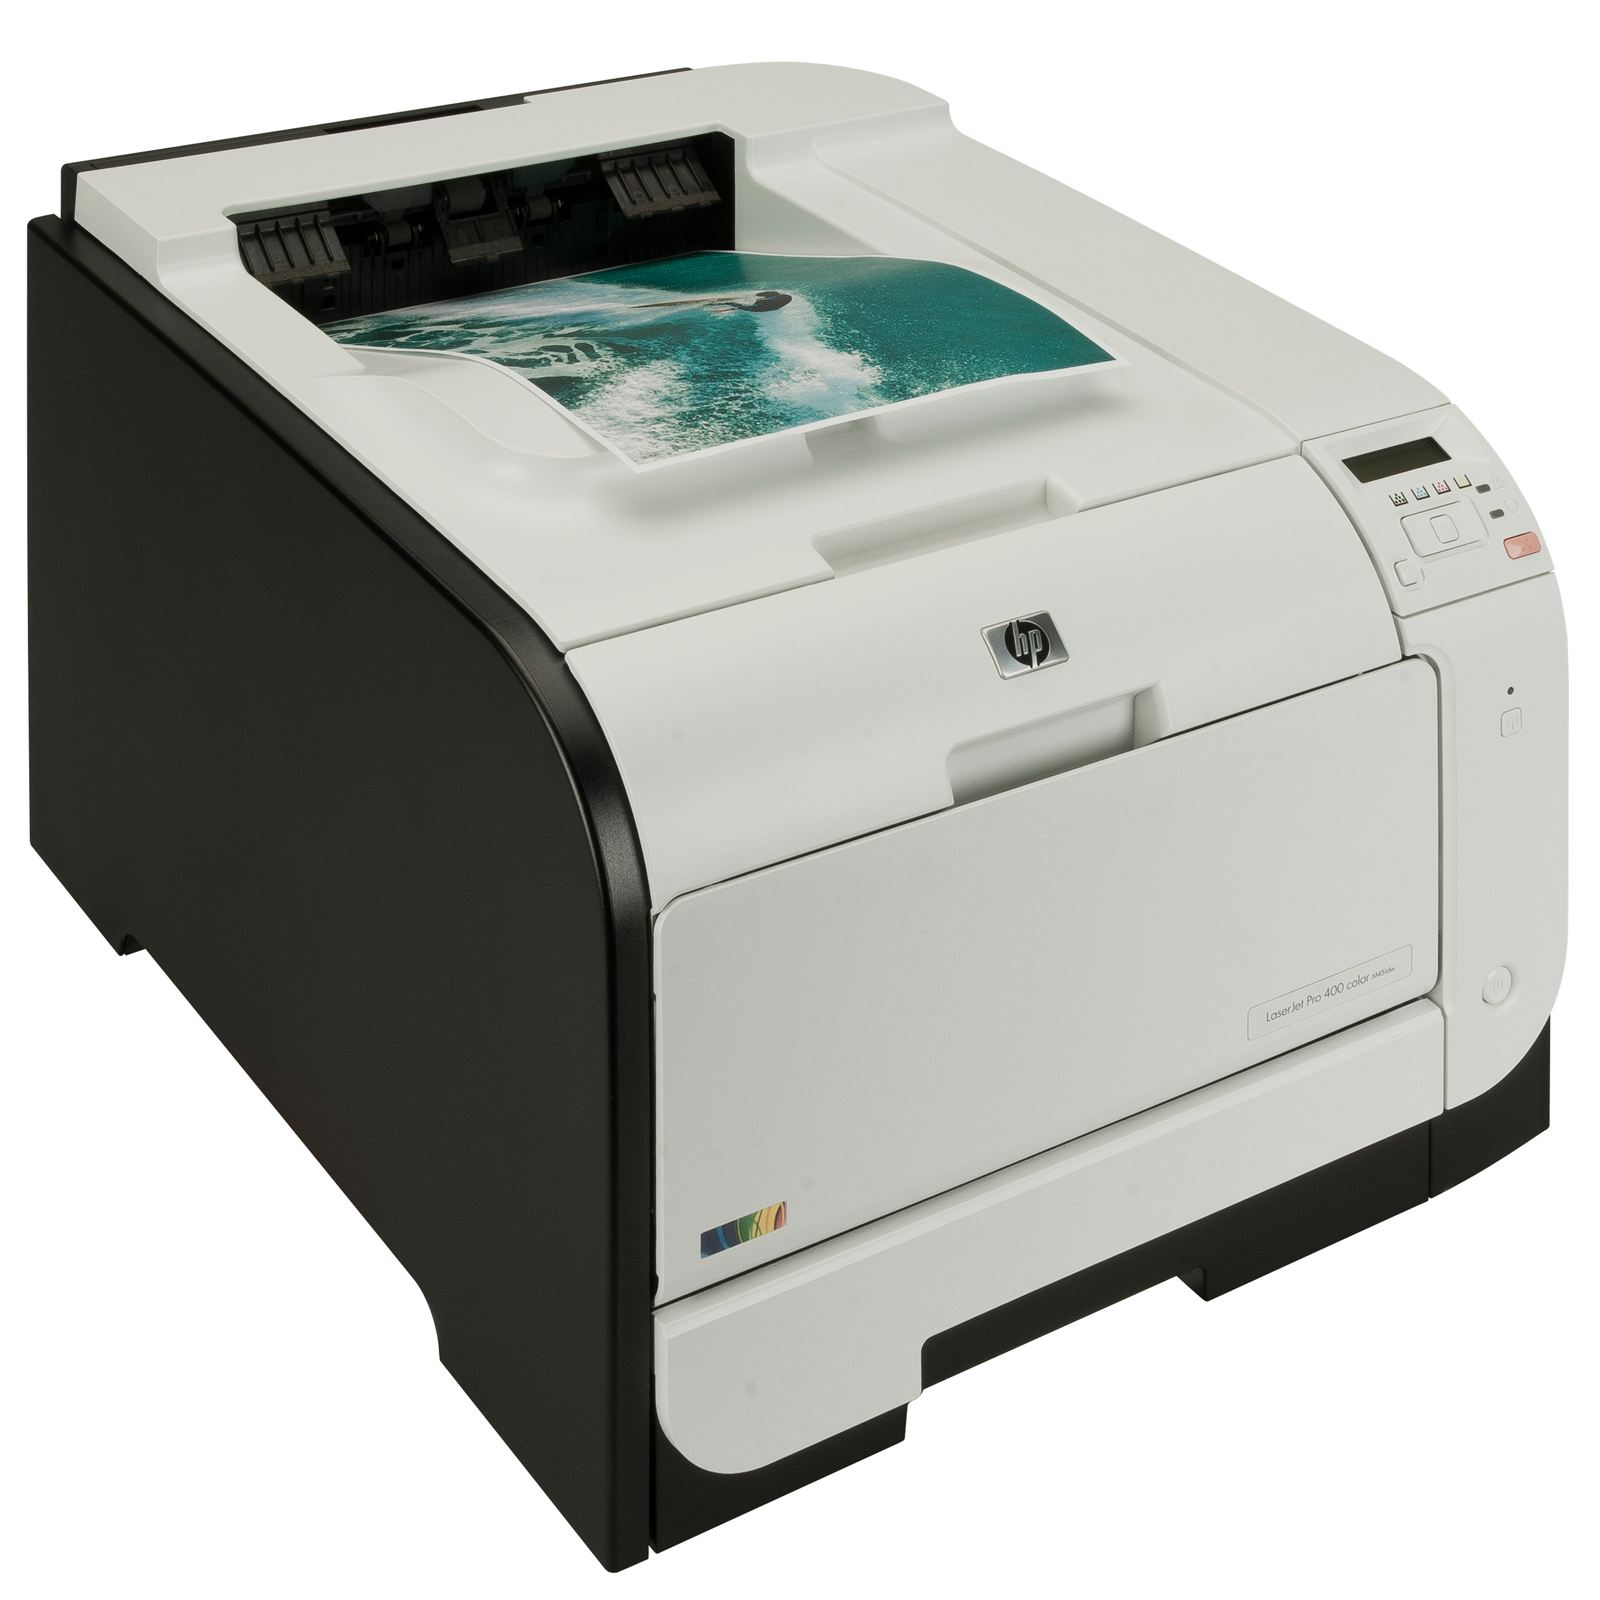 Принтер HP LaserJet Pro 400 color Printer M451dw